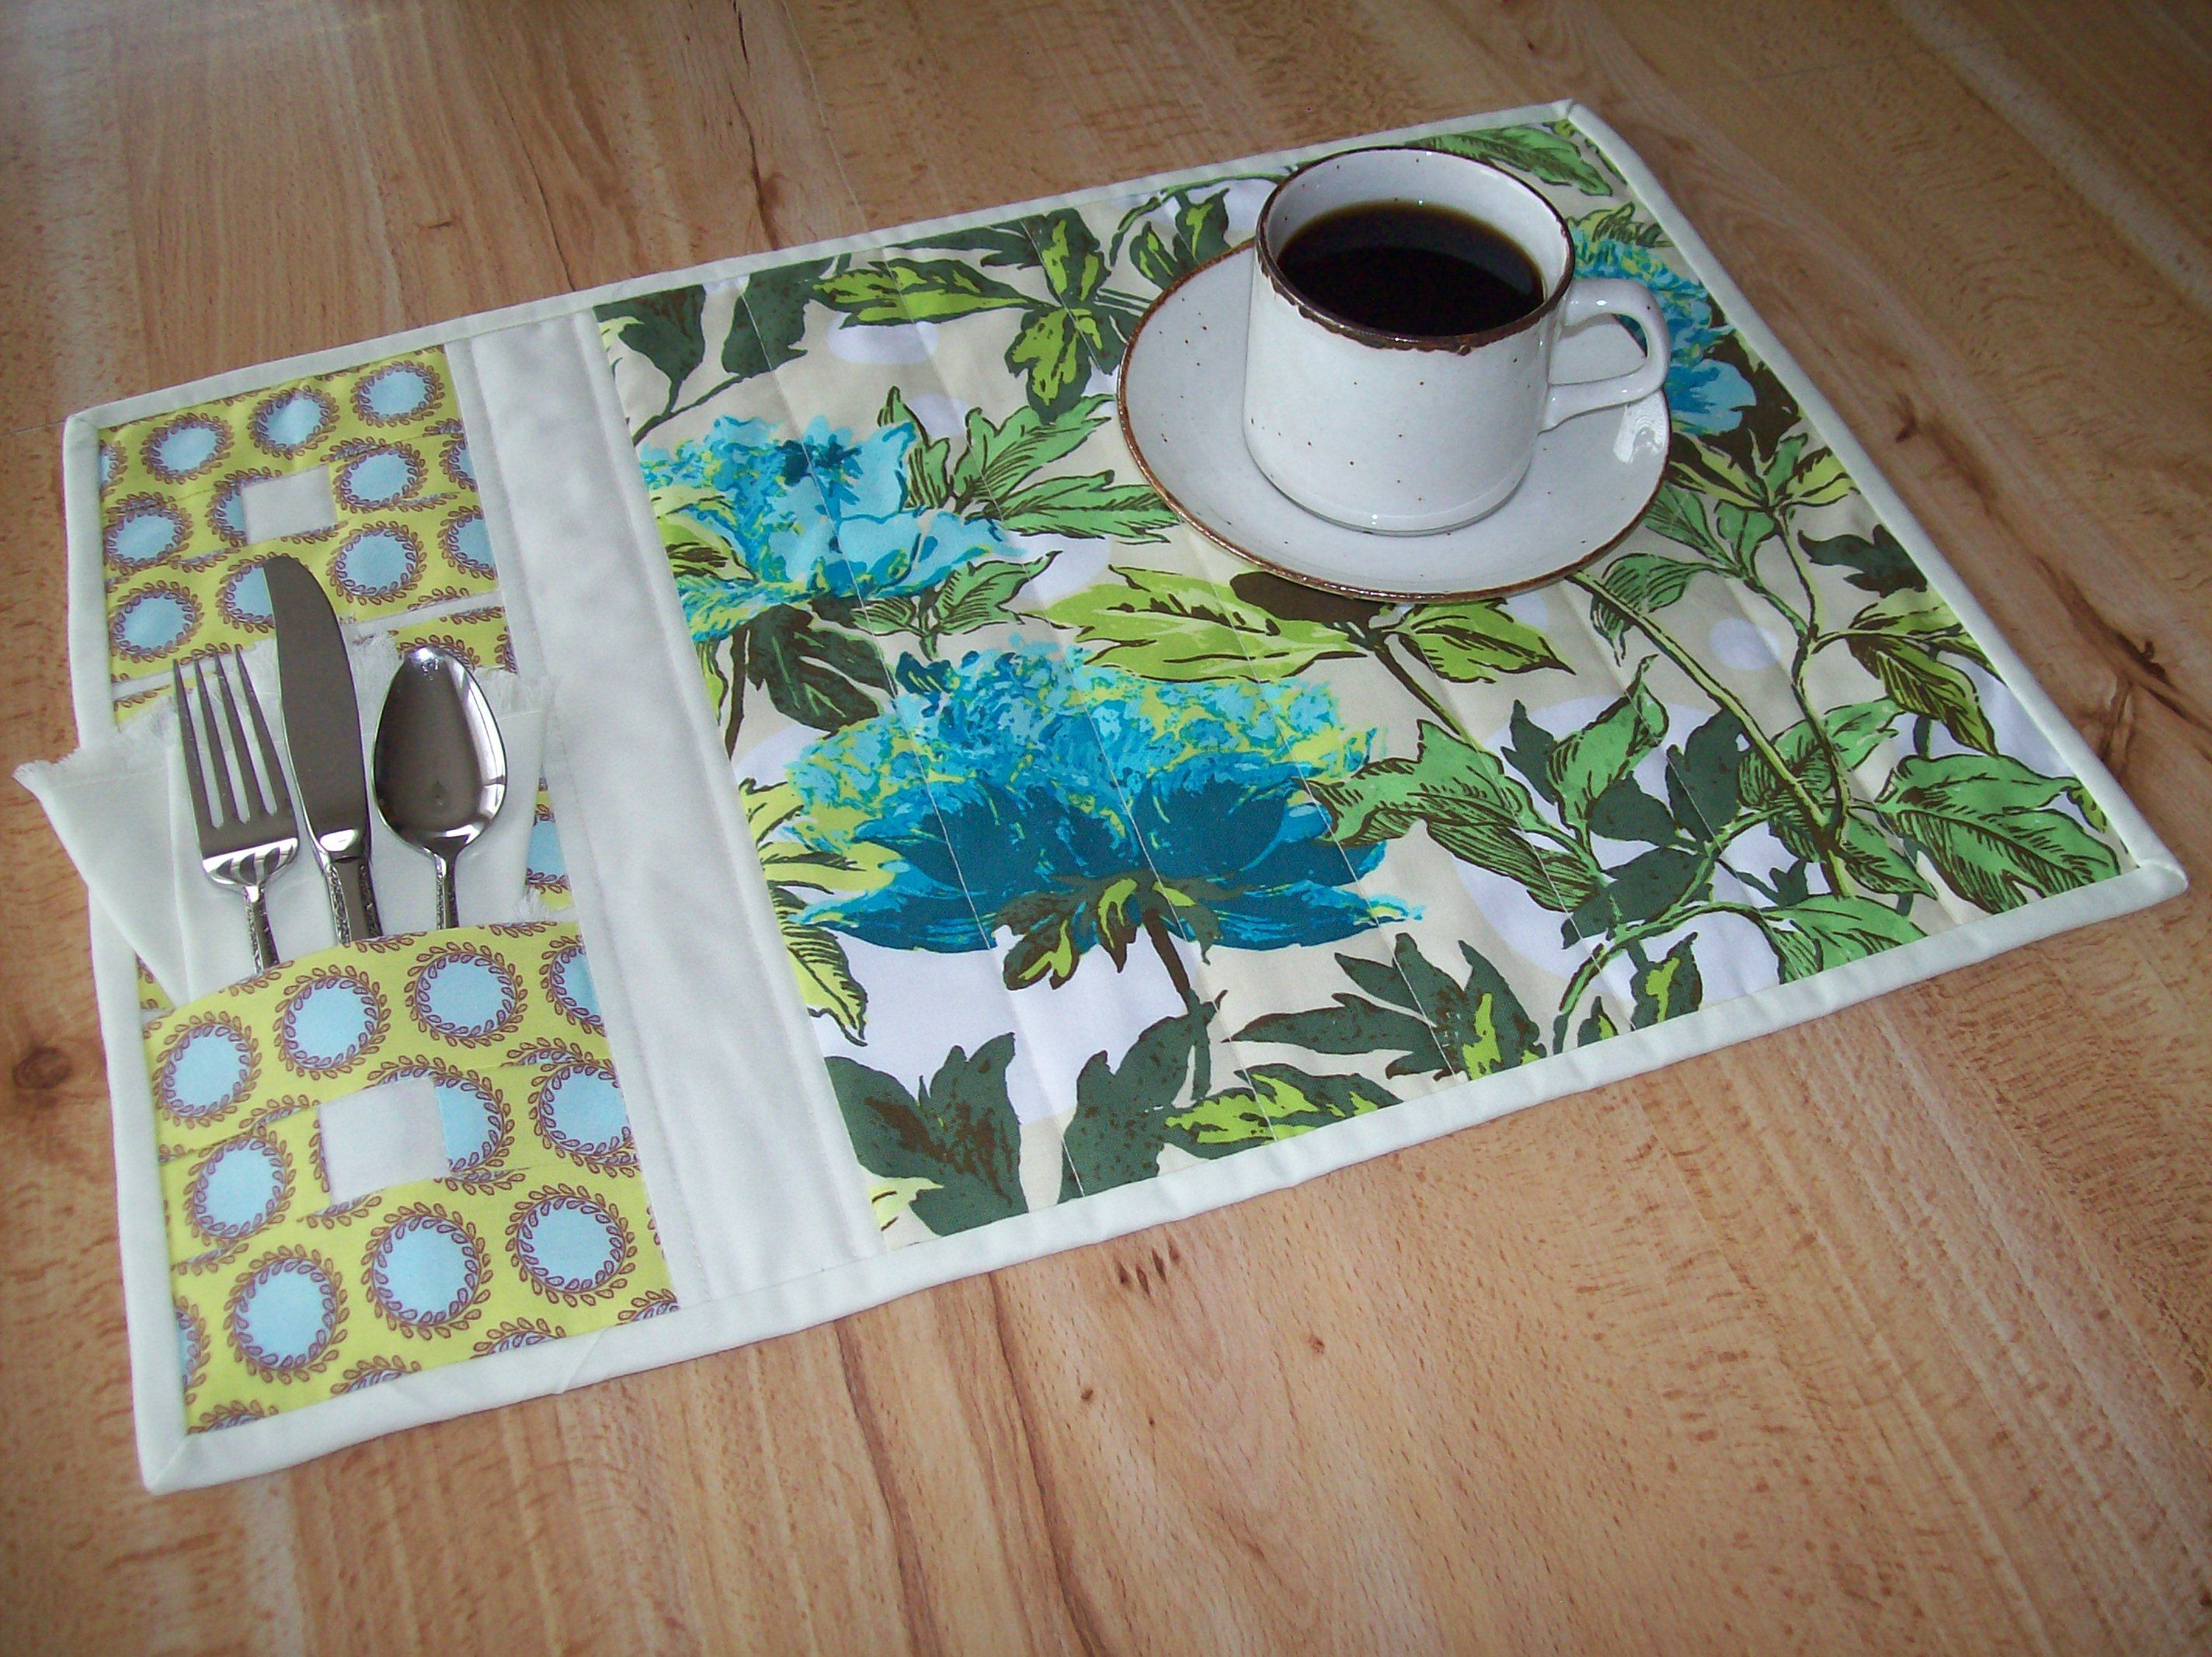 Free Placemat Patterns To Quilt An Easy Project Quilted As You Sew